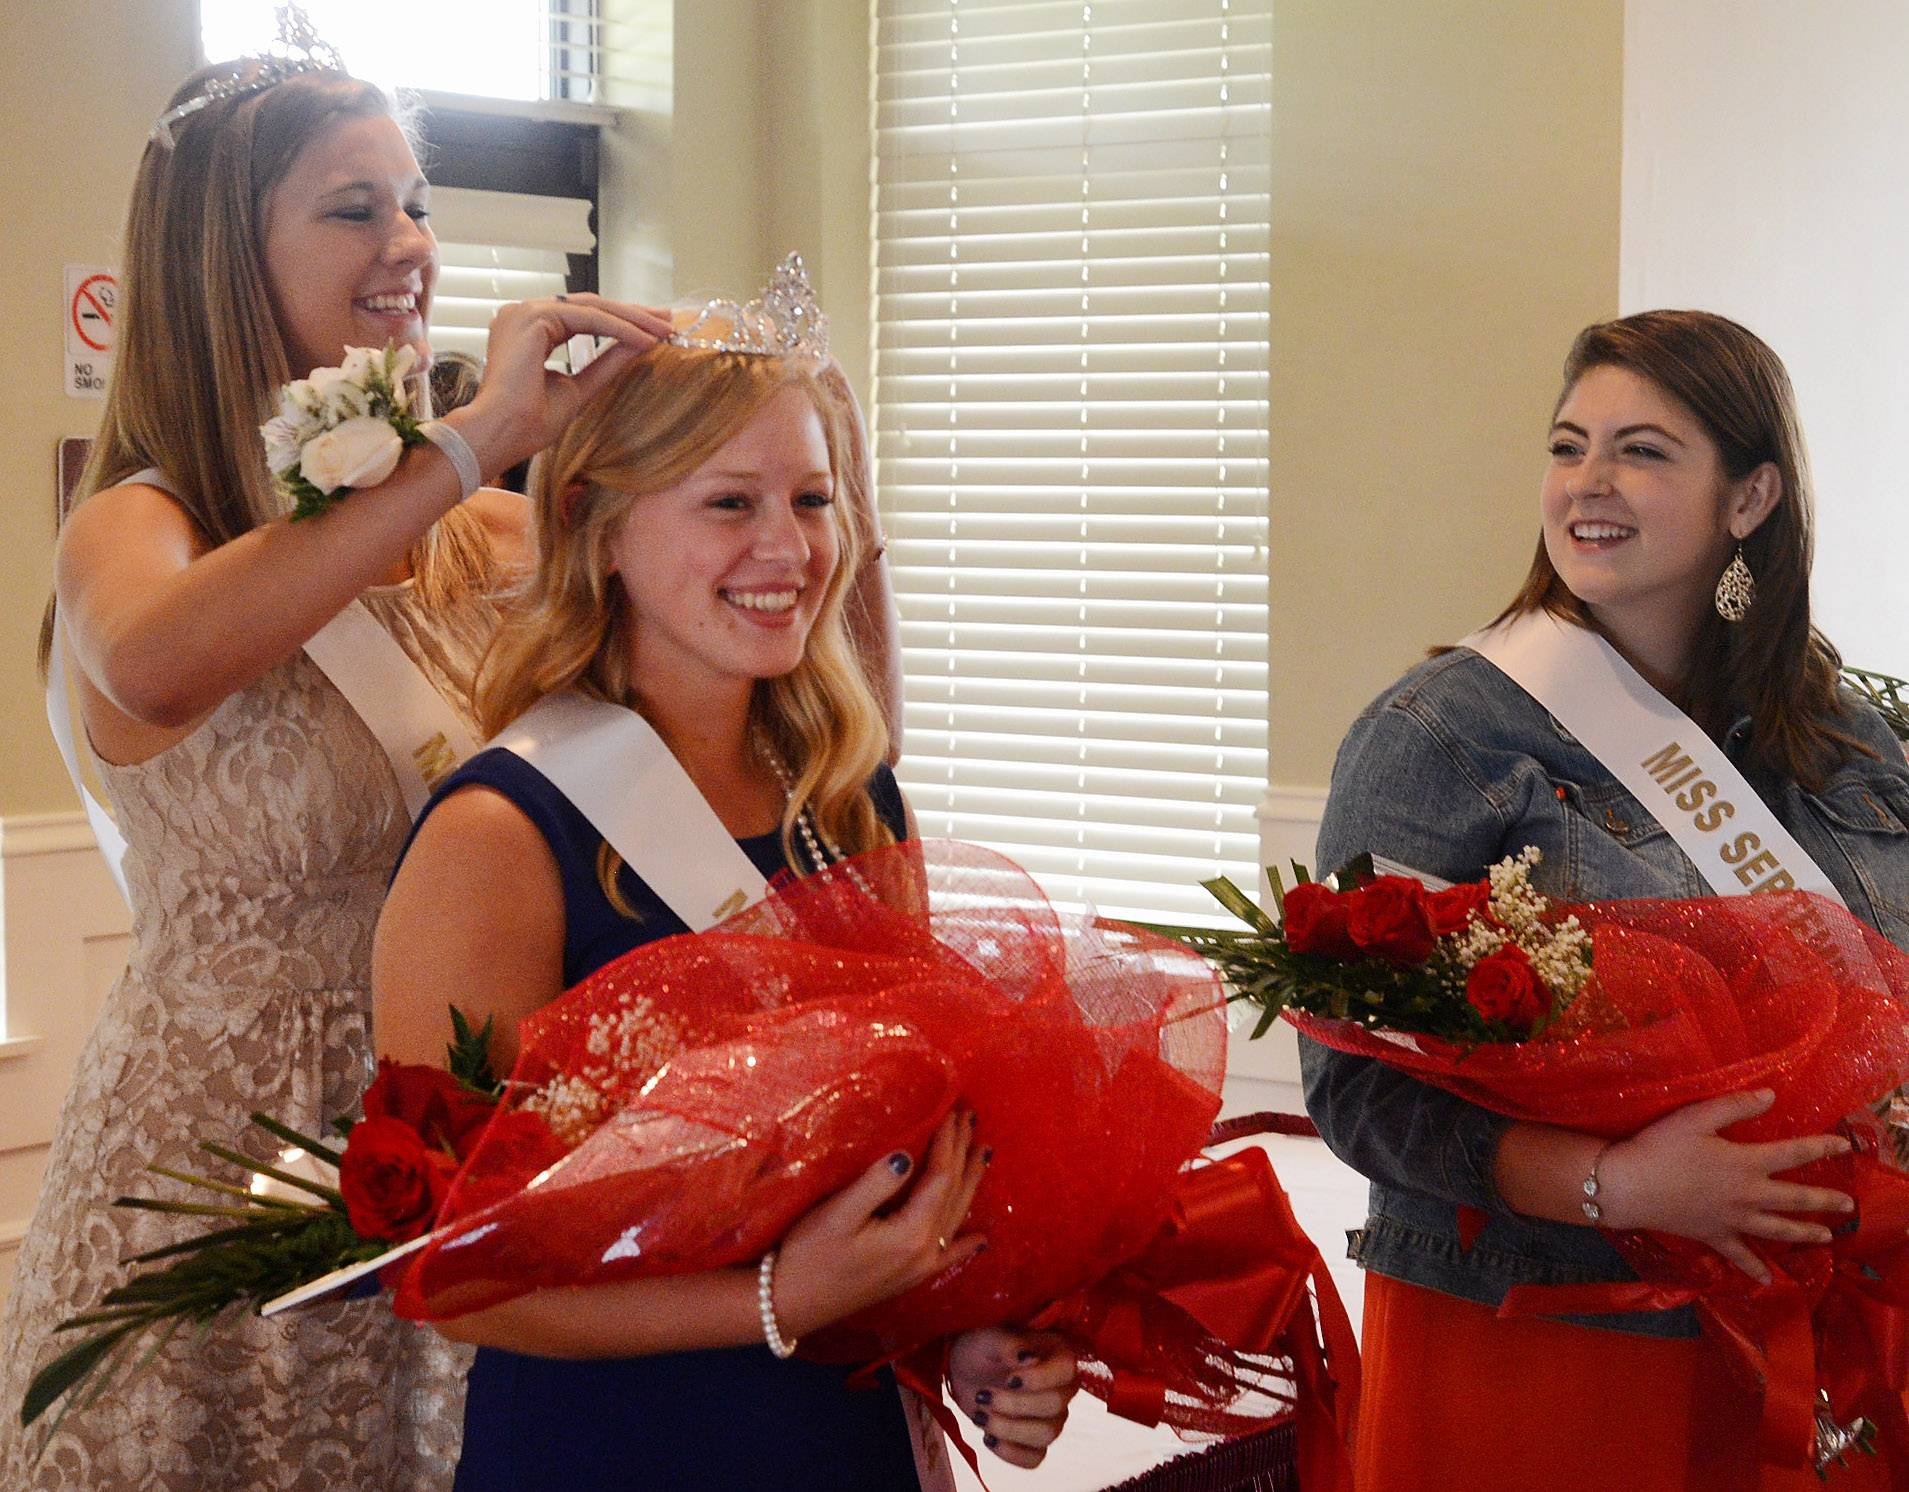 Carly Bryeans, 17, of Conant High School, is crowned Schaumburg's Miss Septemberfest 2014 by last year's Miss Septemberfest, Laura Sue Jensen, 19, of North Central College, Naperville. Runner-up Carolyn Byrne is on the right.